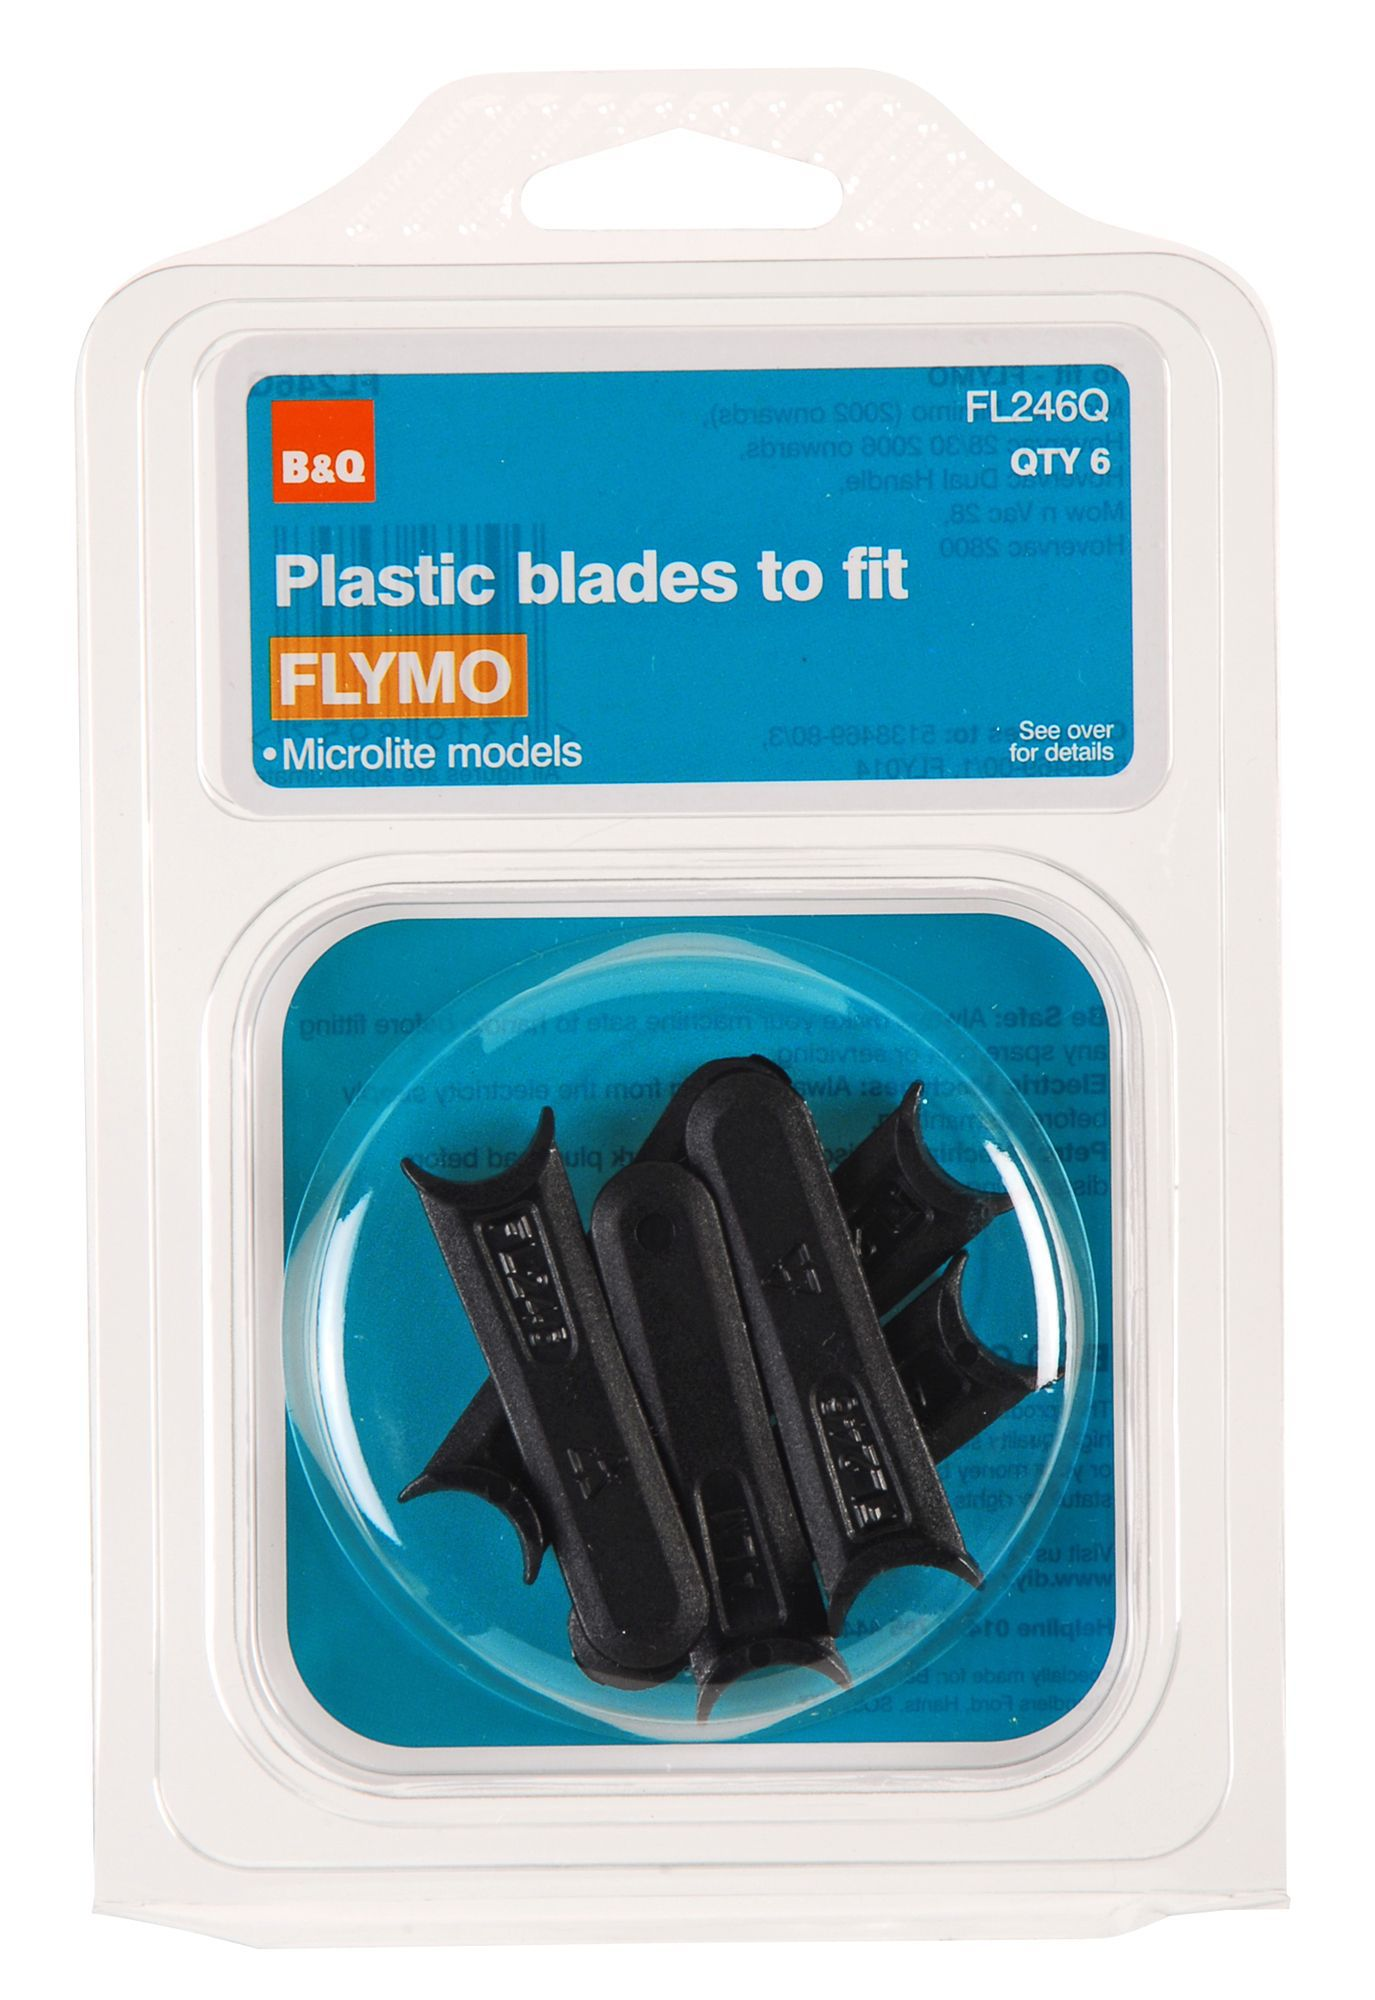 B&Q FL246Q Plastic Lawnmower blade, Pack of 6 | Departments | DIY at B&Q